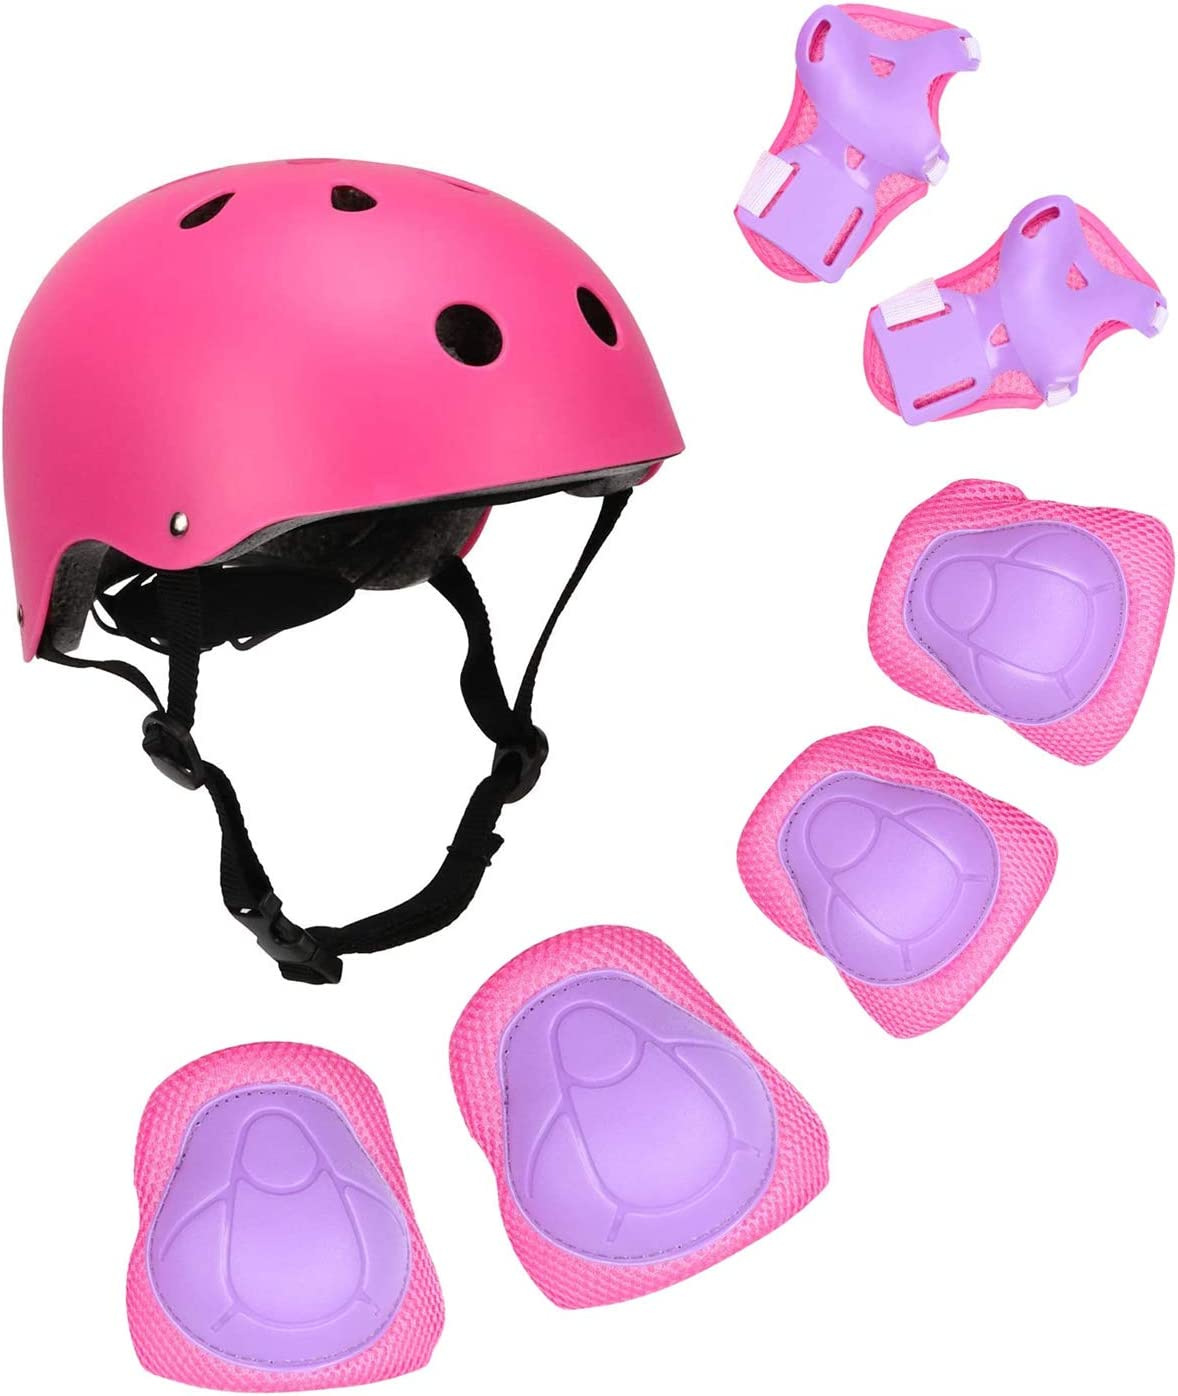 Cycling Wrist Guards Toddler for Multi-Sports Outdoor Scooter Sports BOSONER Kids Bike Helmet Pad Set Elbow Knee Wrist Pads Protective Gear Set for Skateboard Medium, 6-15 Years Roller Skating